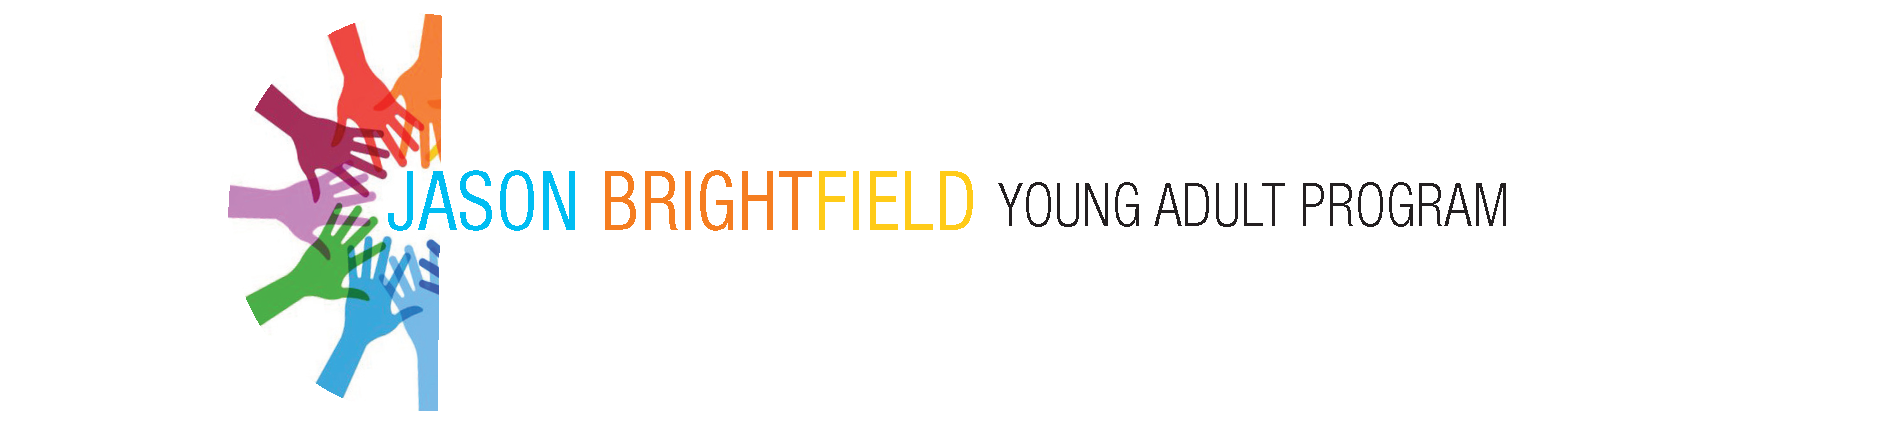 Jason Brightfield Young Adult Program